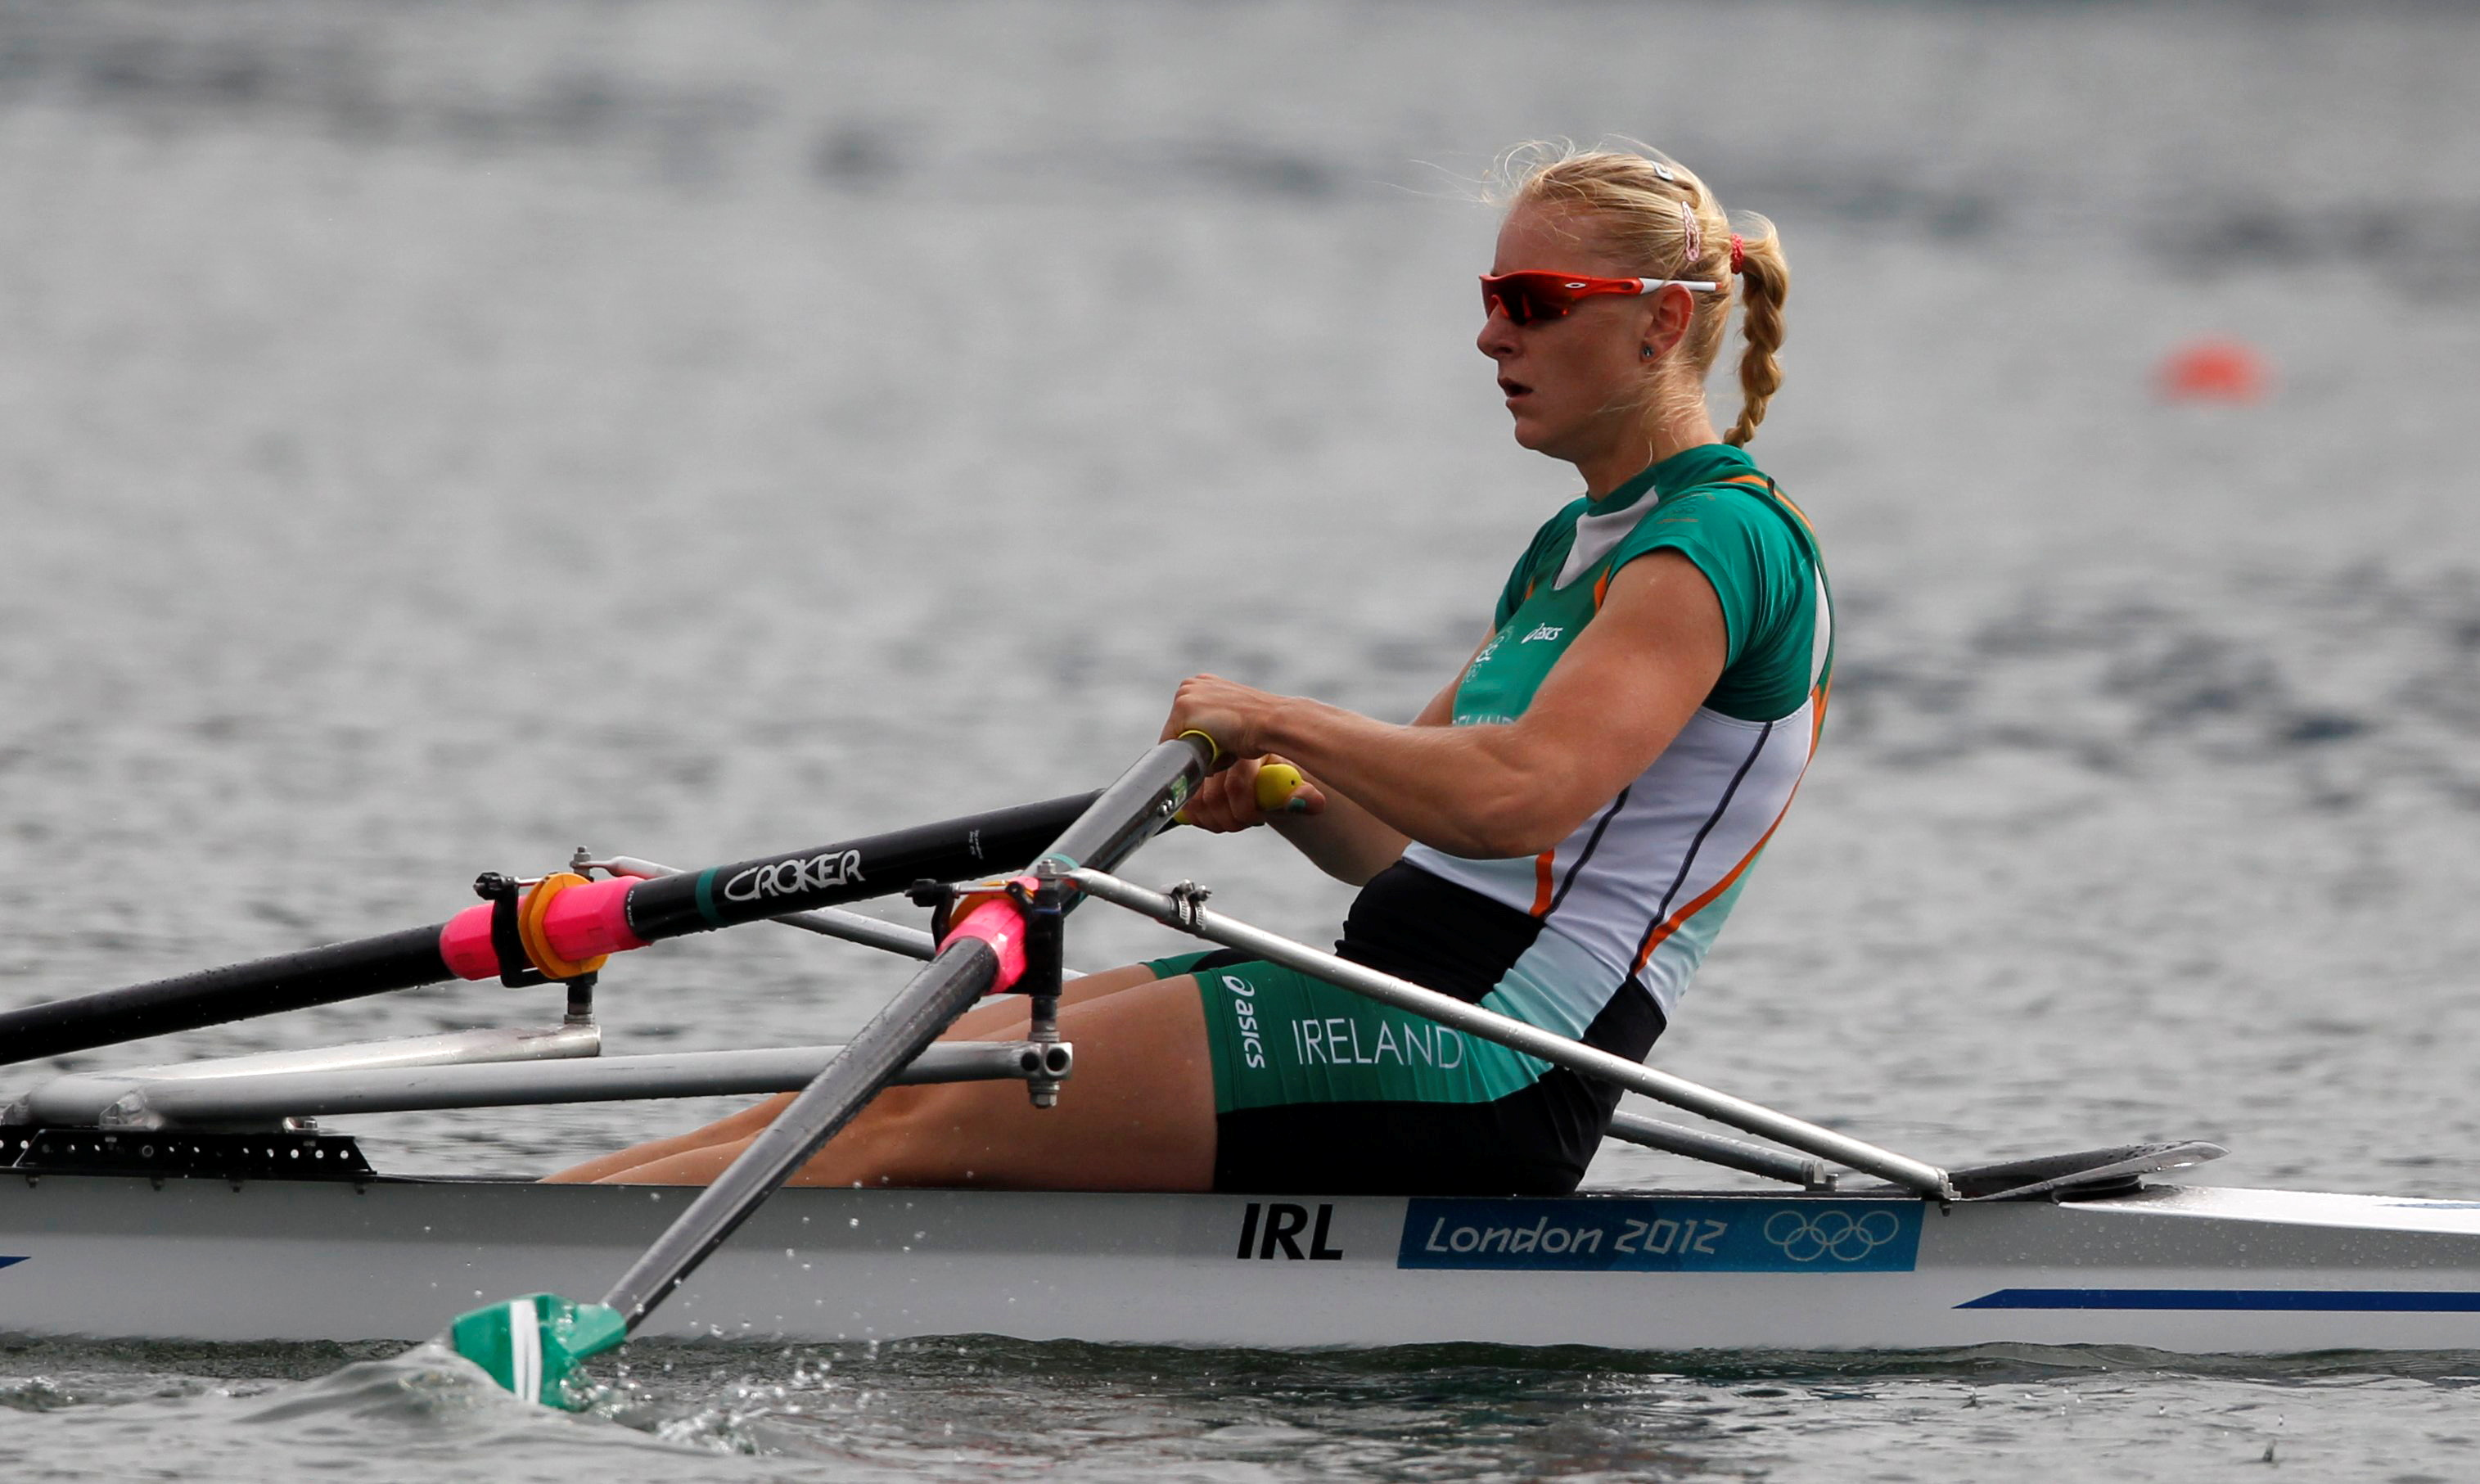 Ireland's Sanita Puspure competes in the women's single sculls semi-finals rowing event during the London 2012 Olympic Games at Eton Dorney August 2, 2012. REUTERS/Darren Whiteside